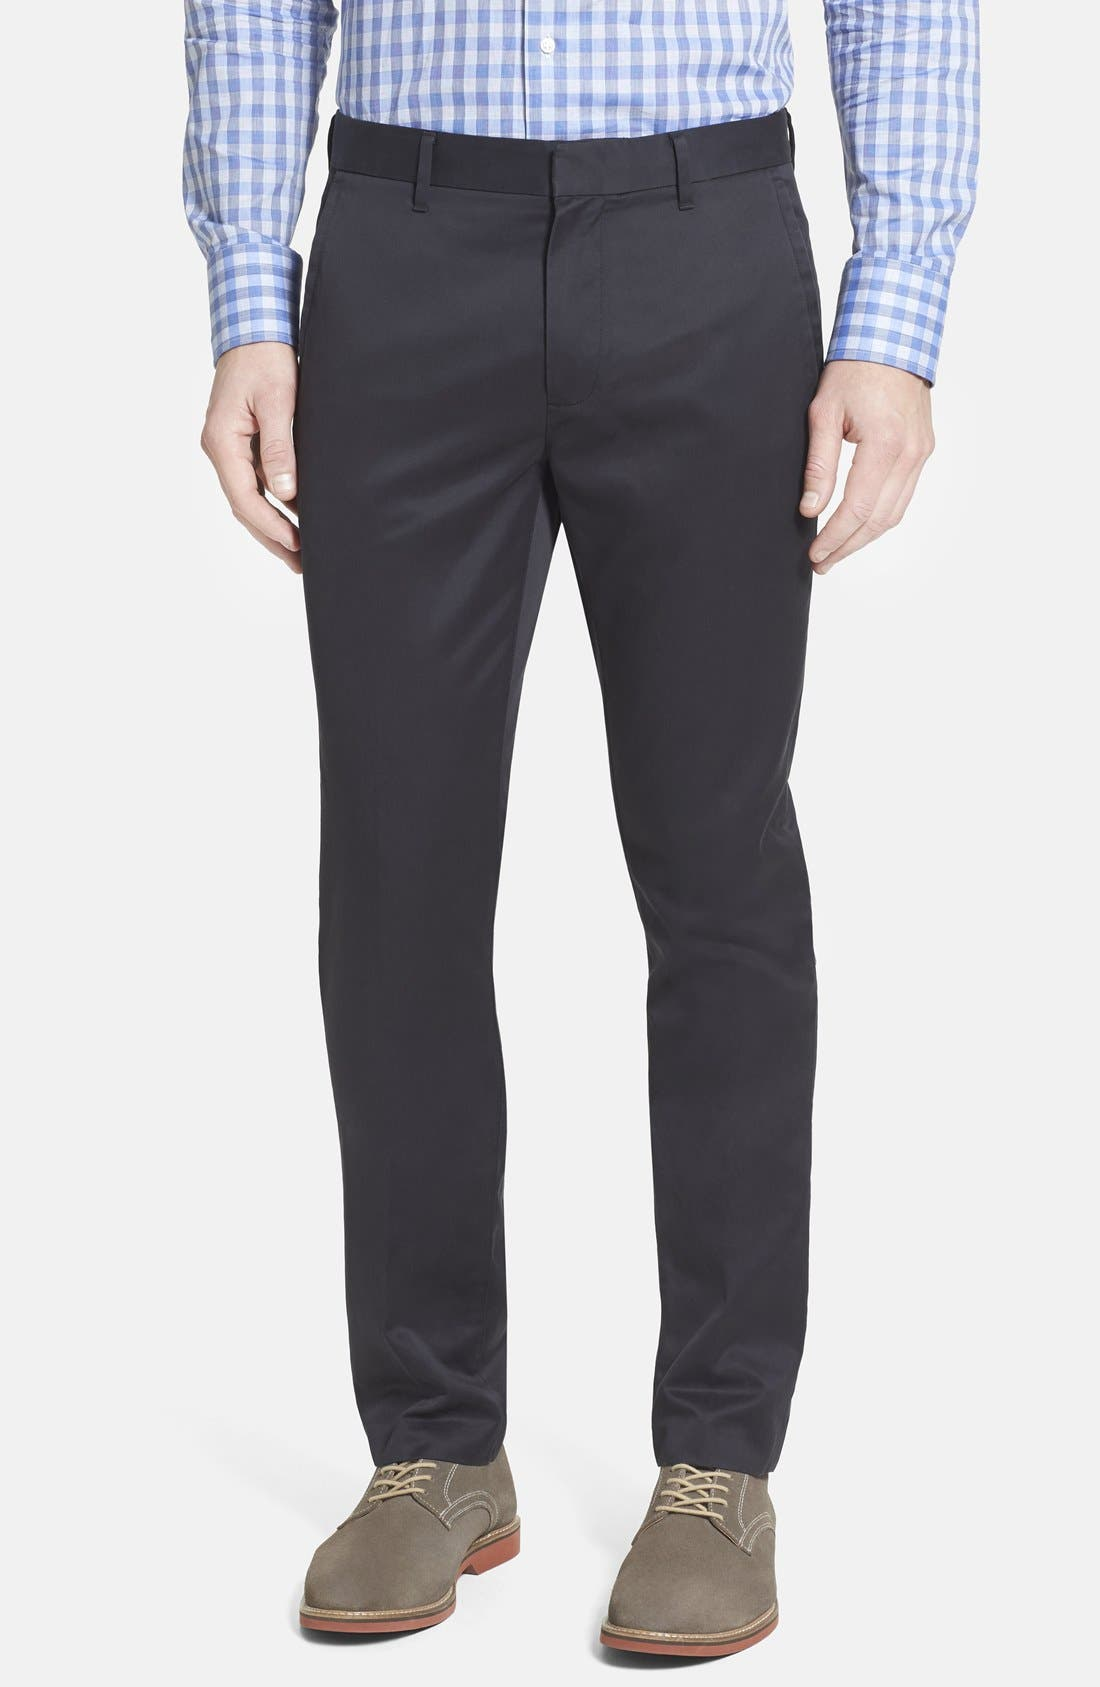 'Weekday Warriors' Non-Iron Tailored Cotton Chinos,                         Main,                         color, TUESDAY BLACKS